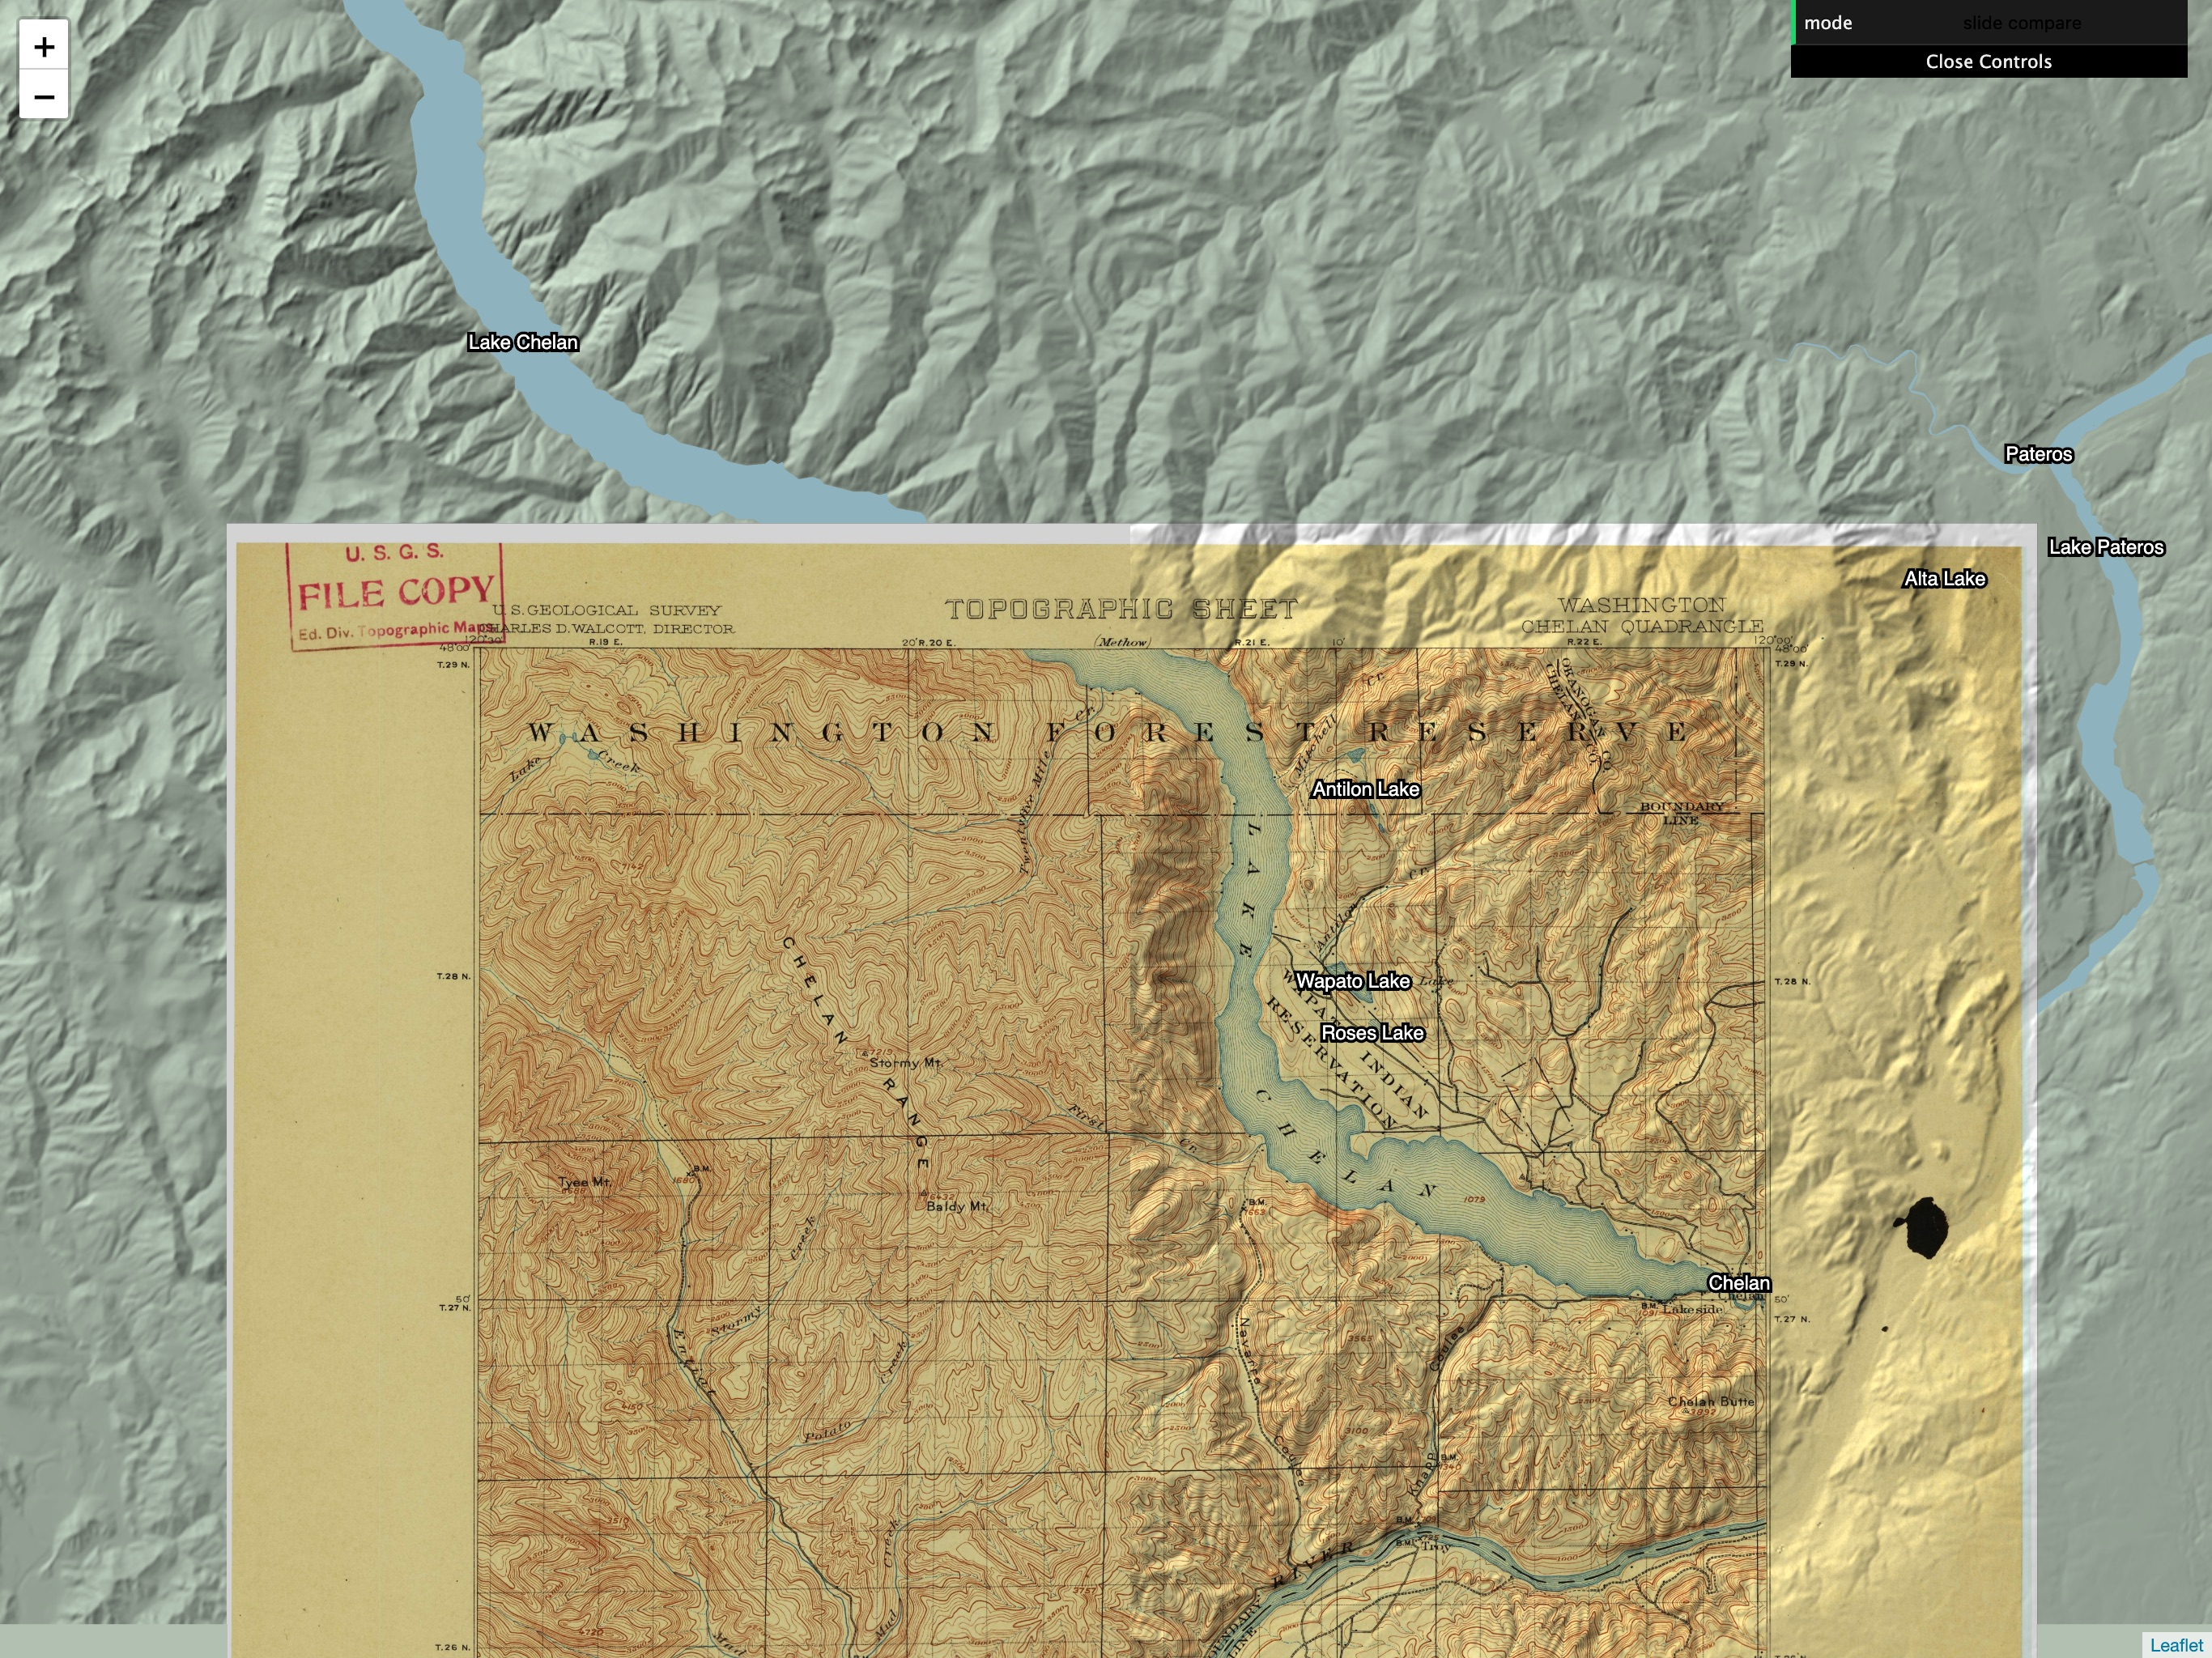 USGS historical map overlay